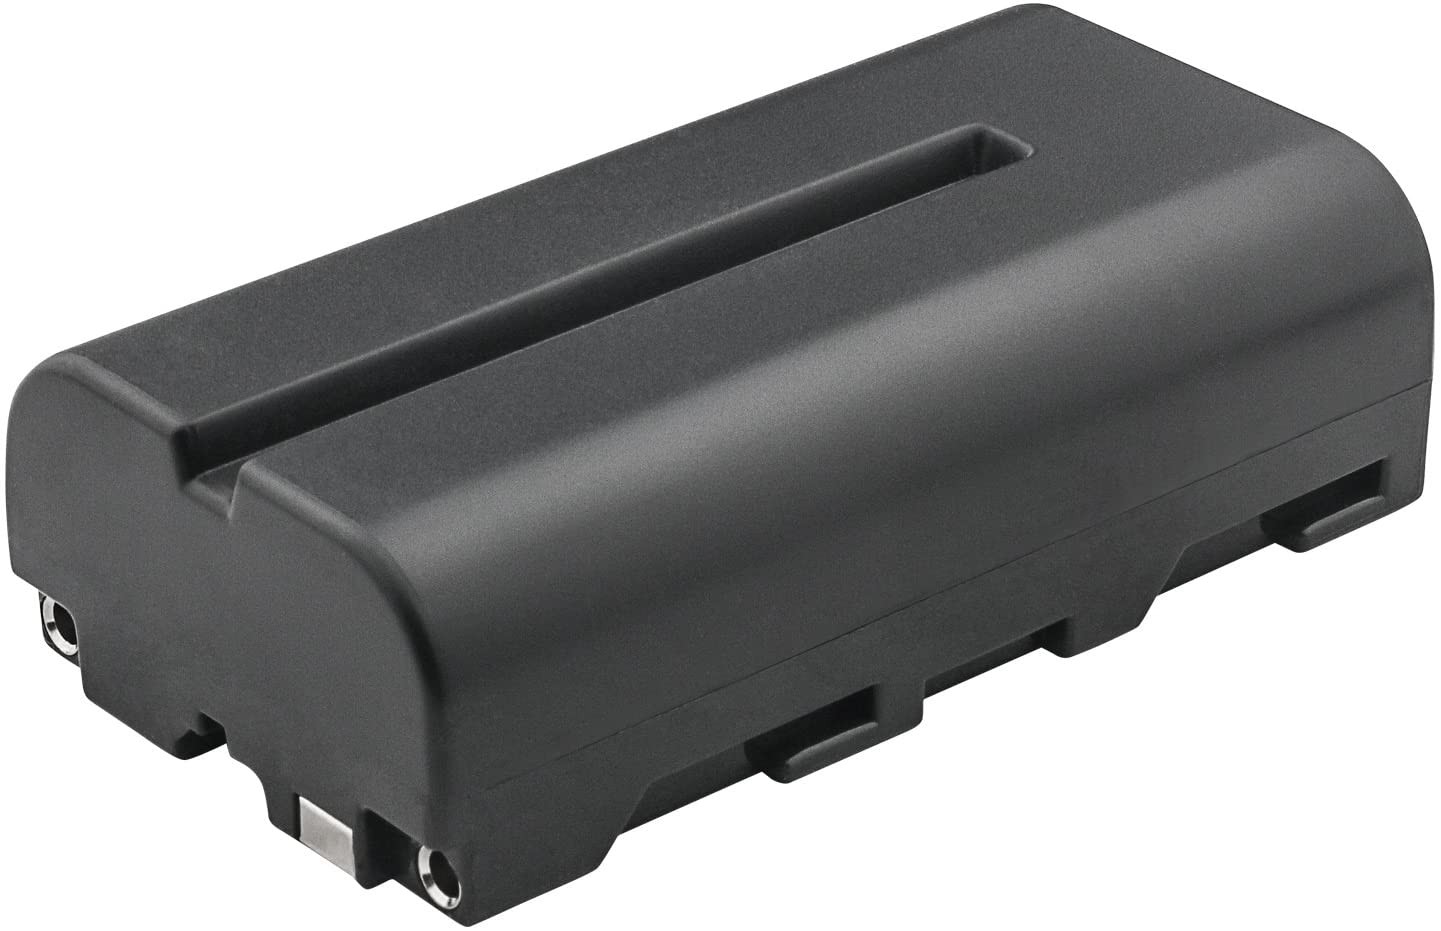 Kastar NP-F570 Battery Pack Replacement for Sony CCD-TRV49, CCD-TRV58, CCD-TRV68, CCD-TRV71, CCD-TRV75, CCD-TRV80, CCD-TRV86, CCD-TRV88, CCD-TRV90, CCD-TRV97, CCD-TRV98, CCD-TRV99 Handycam Camcorder